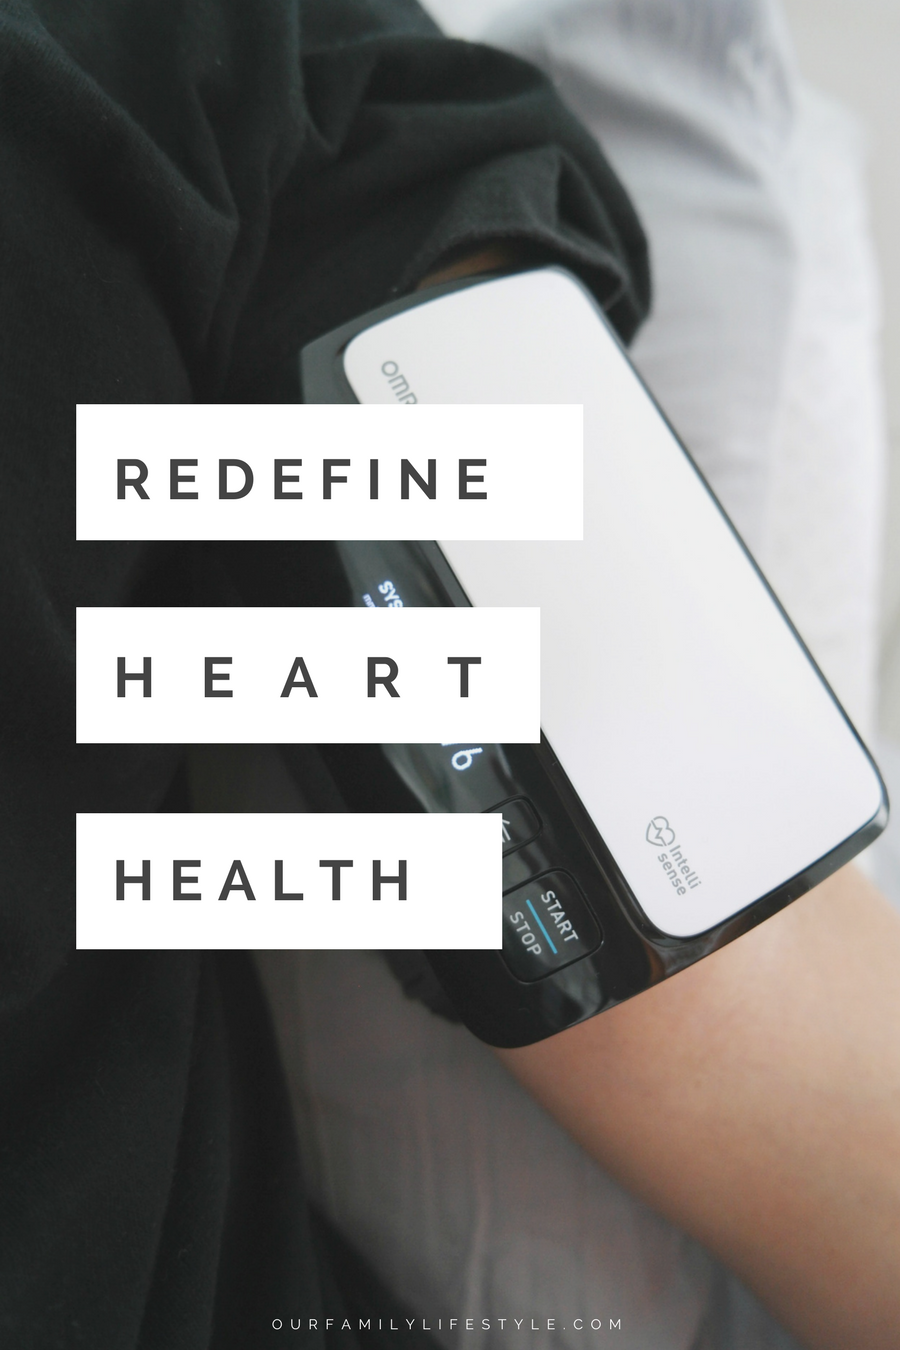 Redefine Heart Health with Omron's Going for Zero Pledge